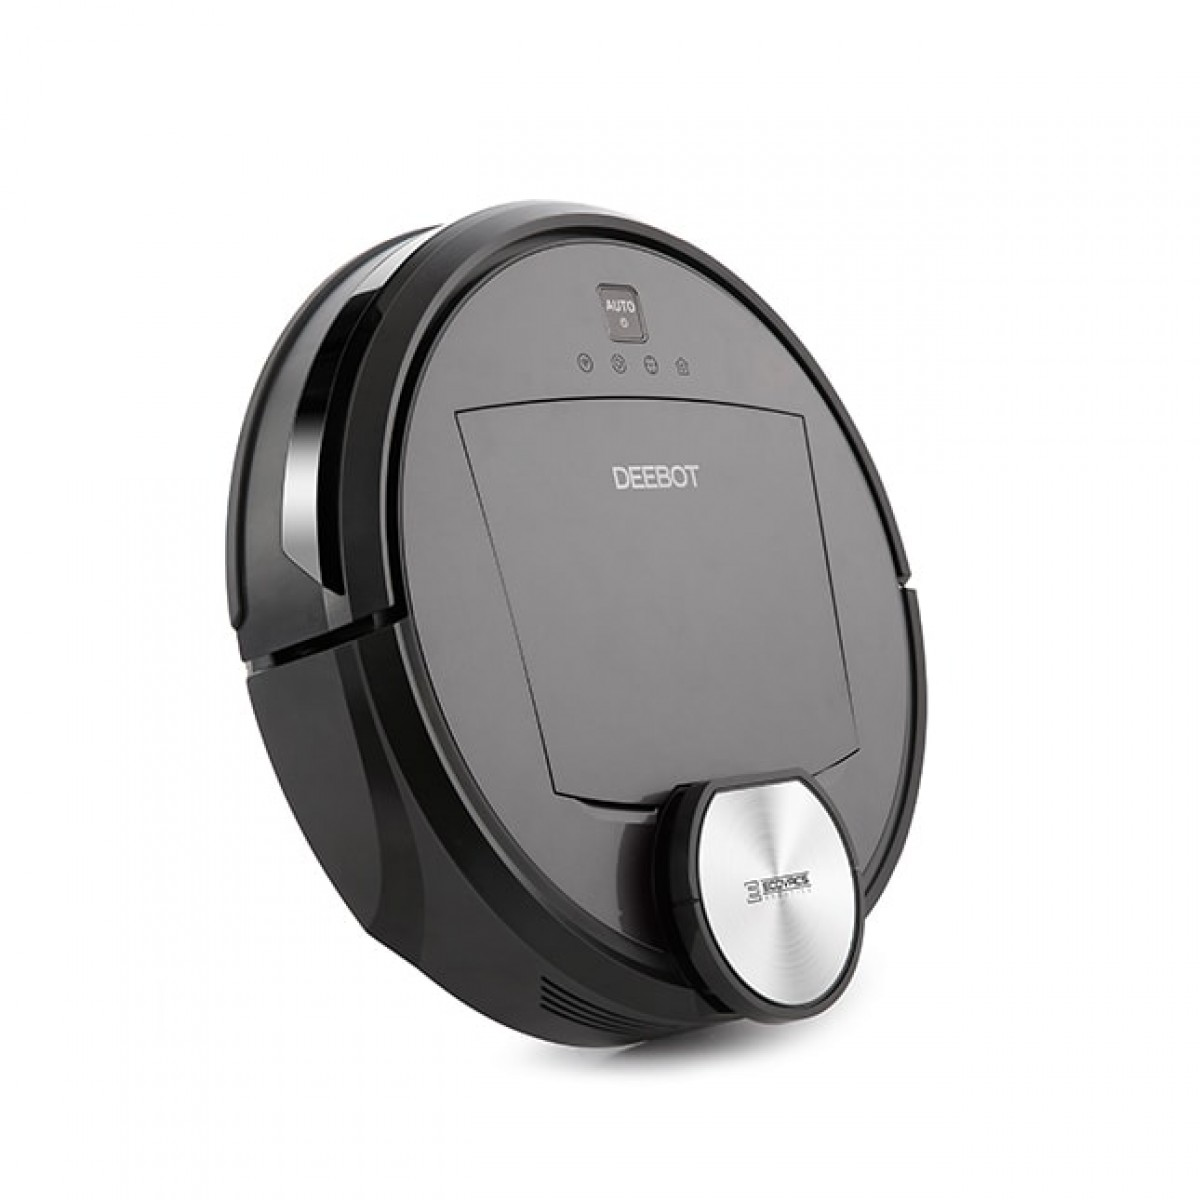 ECOVACS Floor Cleaning Robot, Deebot R95